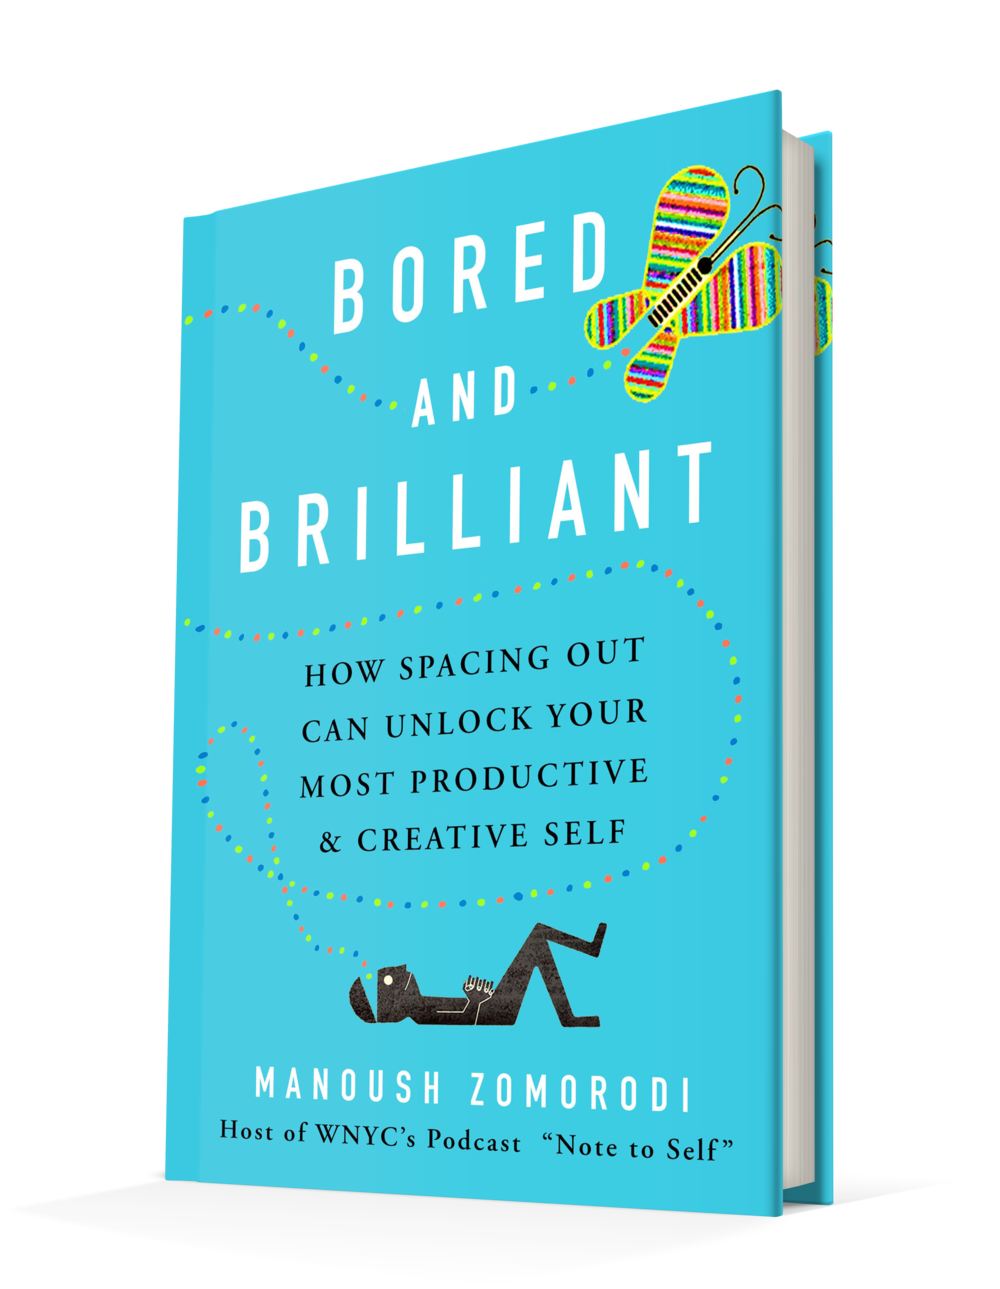 First a hit podcast, now a book. - In 2015, Manoush led tens of thousands of her Note to Self listeners through an interactive project to reclaim their time. Now, the Bored and Brilliant book empowers the reader to transform their digital anxiety into self-knowledge, autonomy, and action.